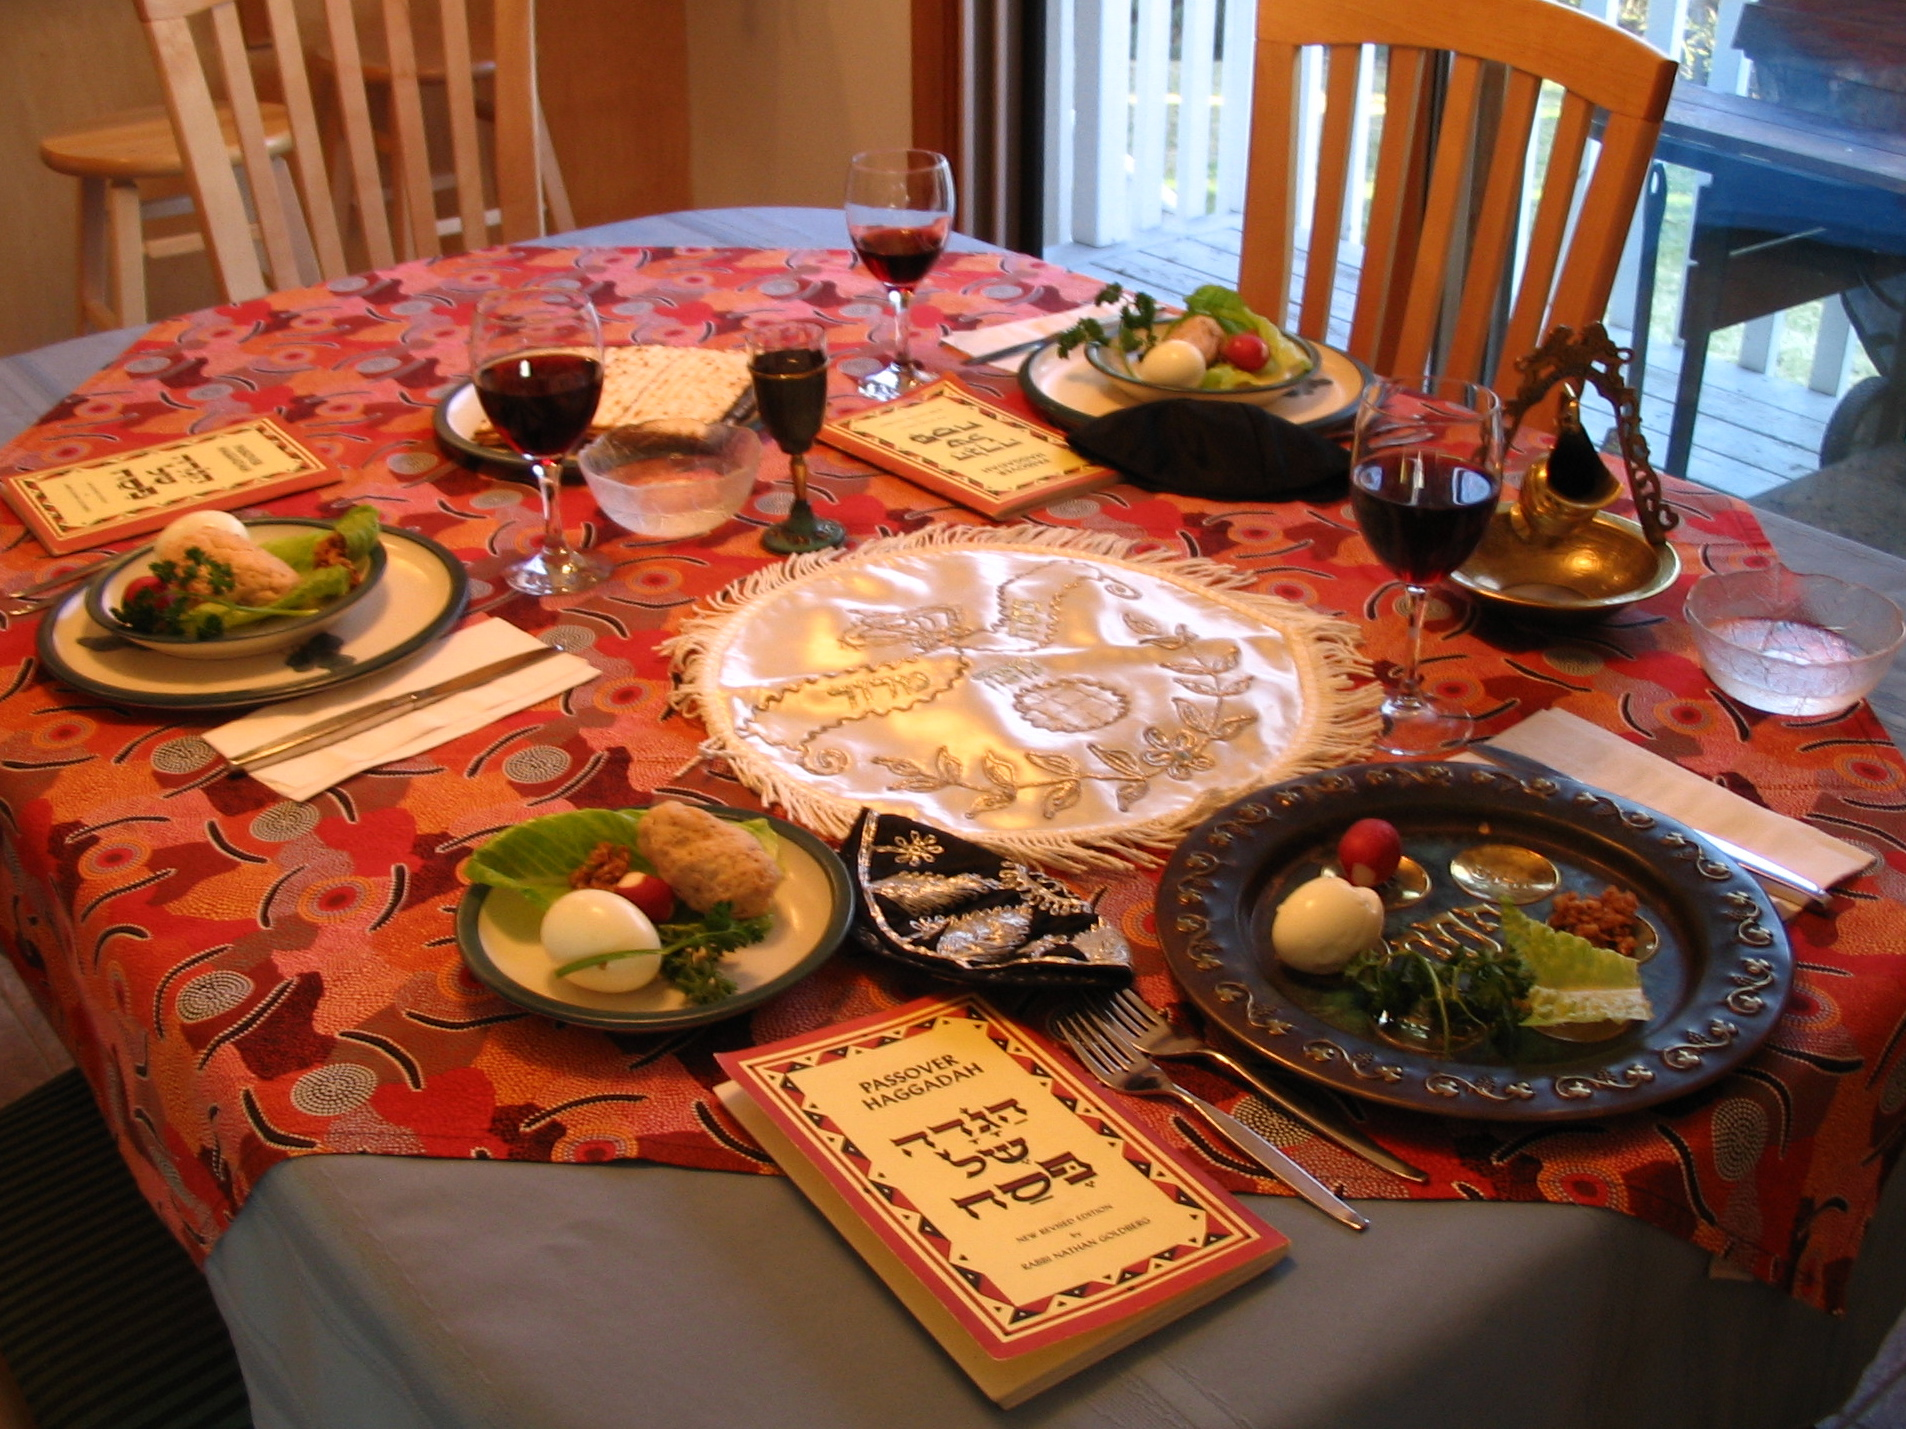 A table set for a Passover seder. (Photo: Wikipedia)